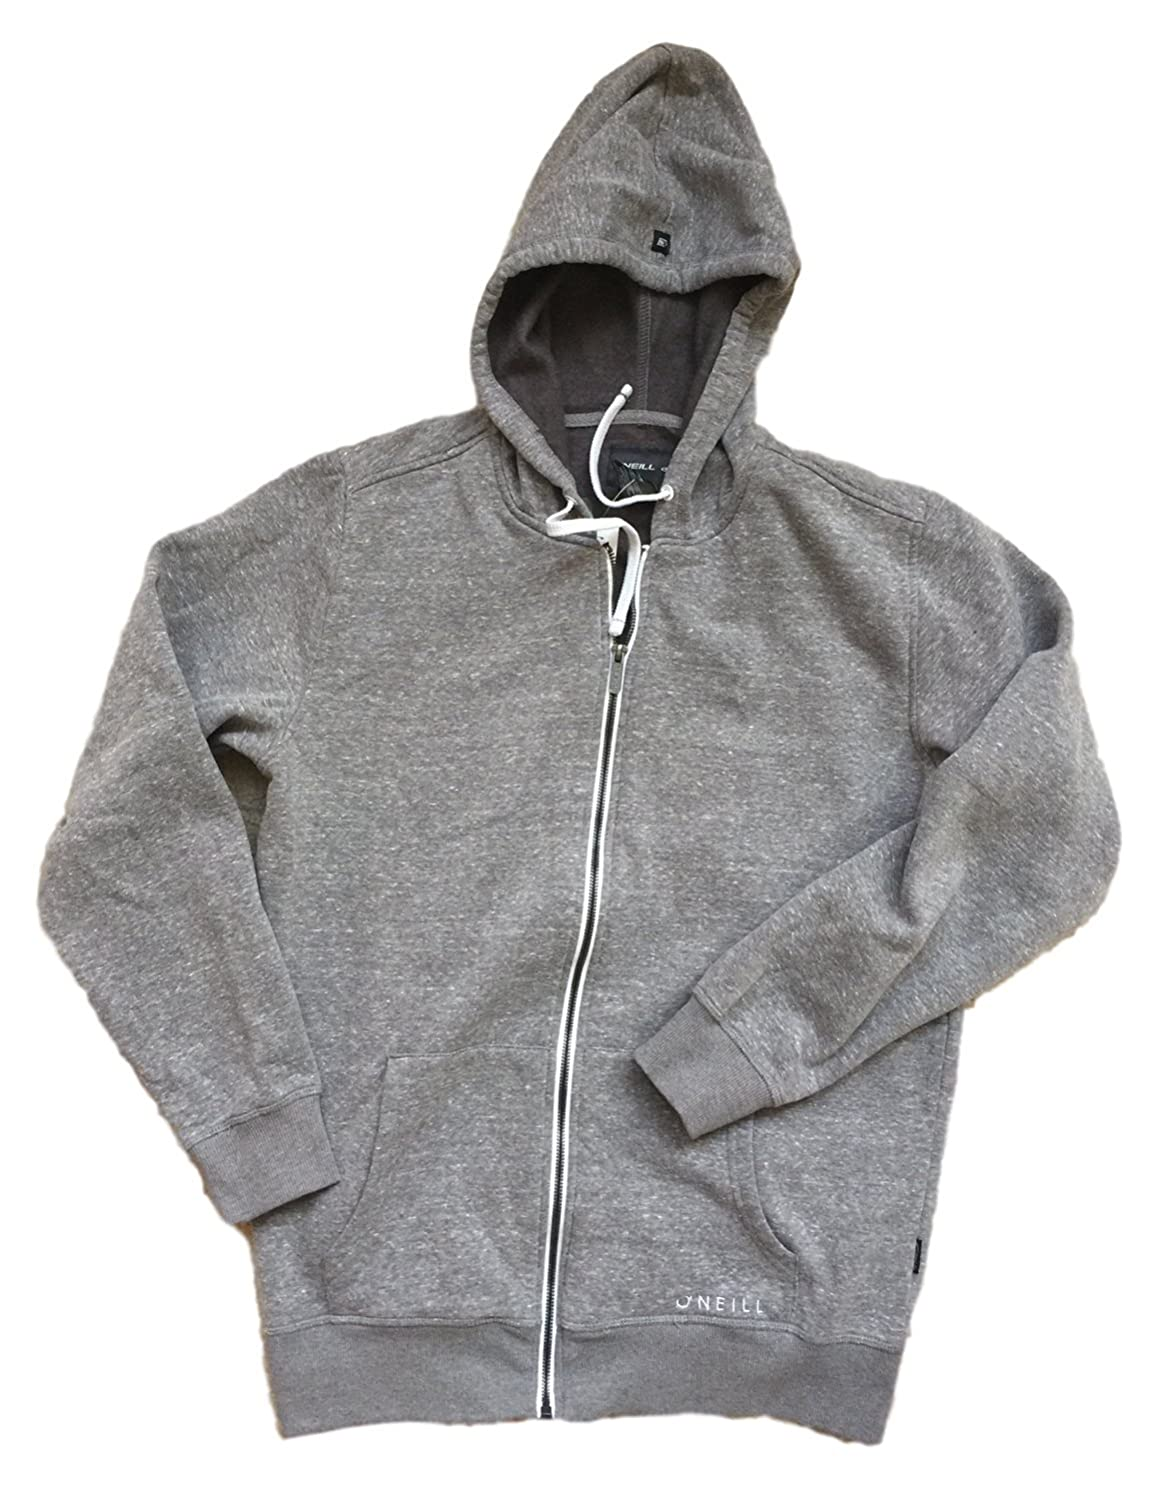 O'Neill Men's Fleece Full Zip Hooded Line Up Jacket